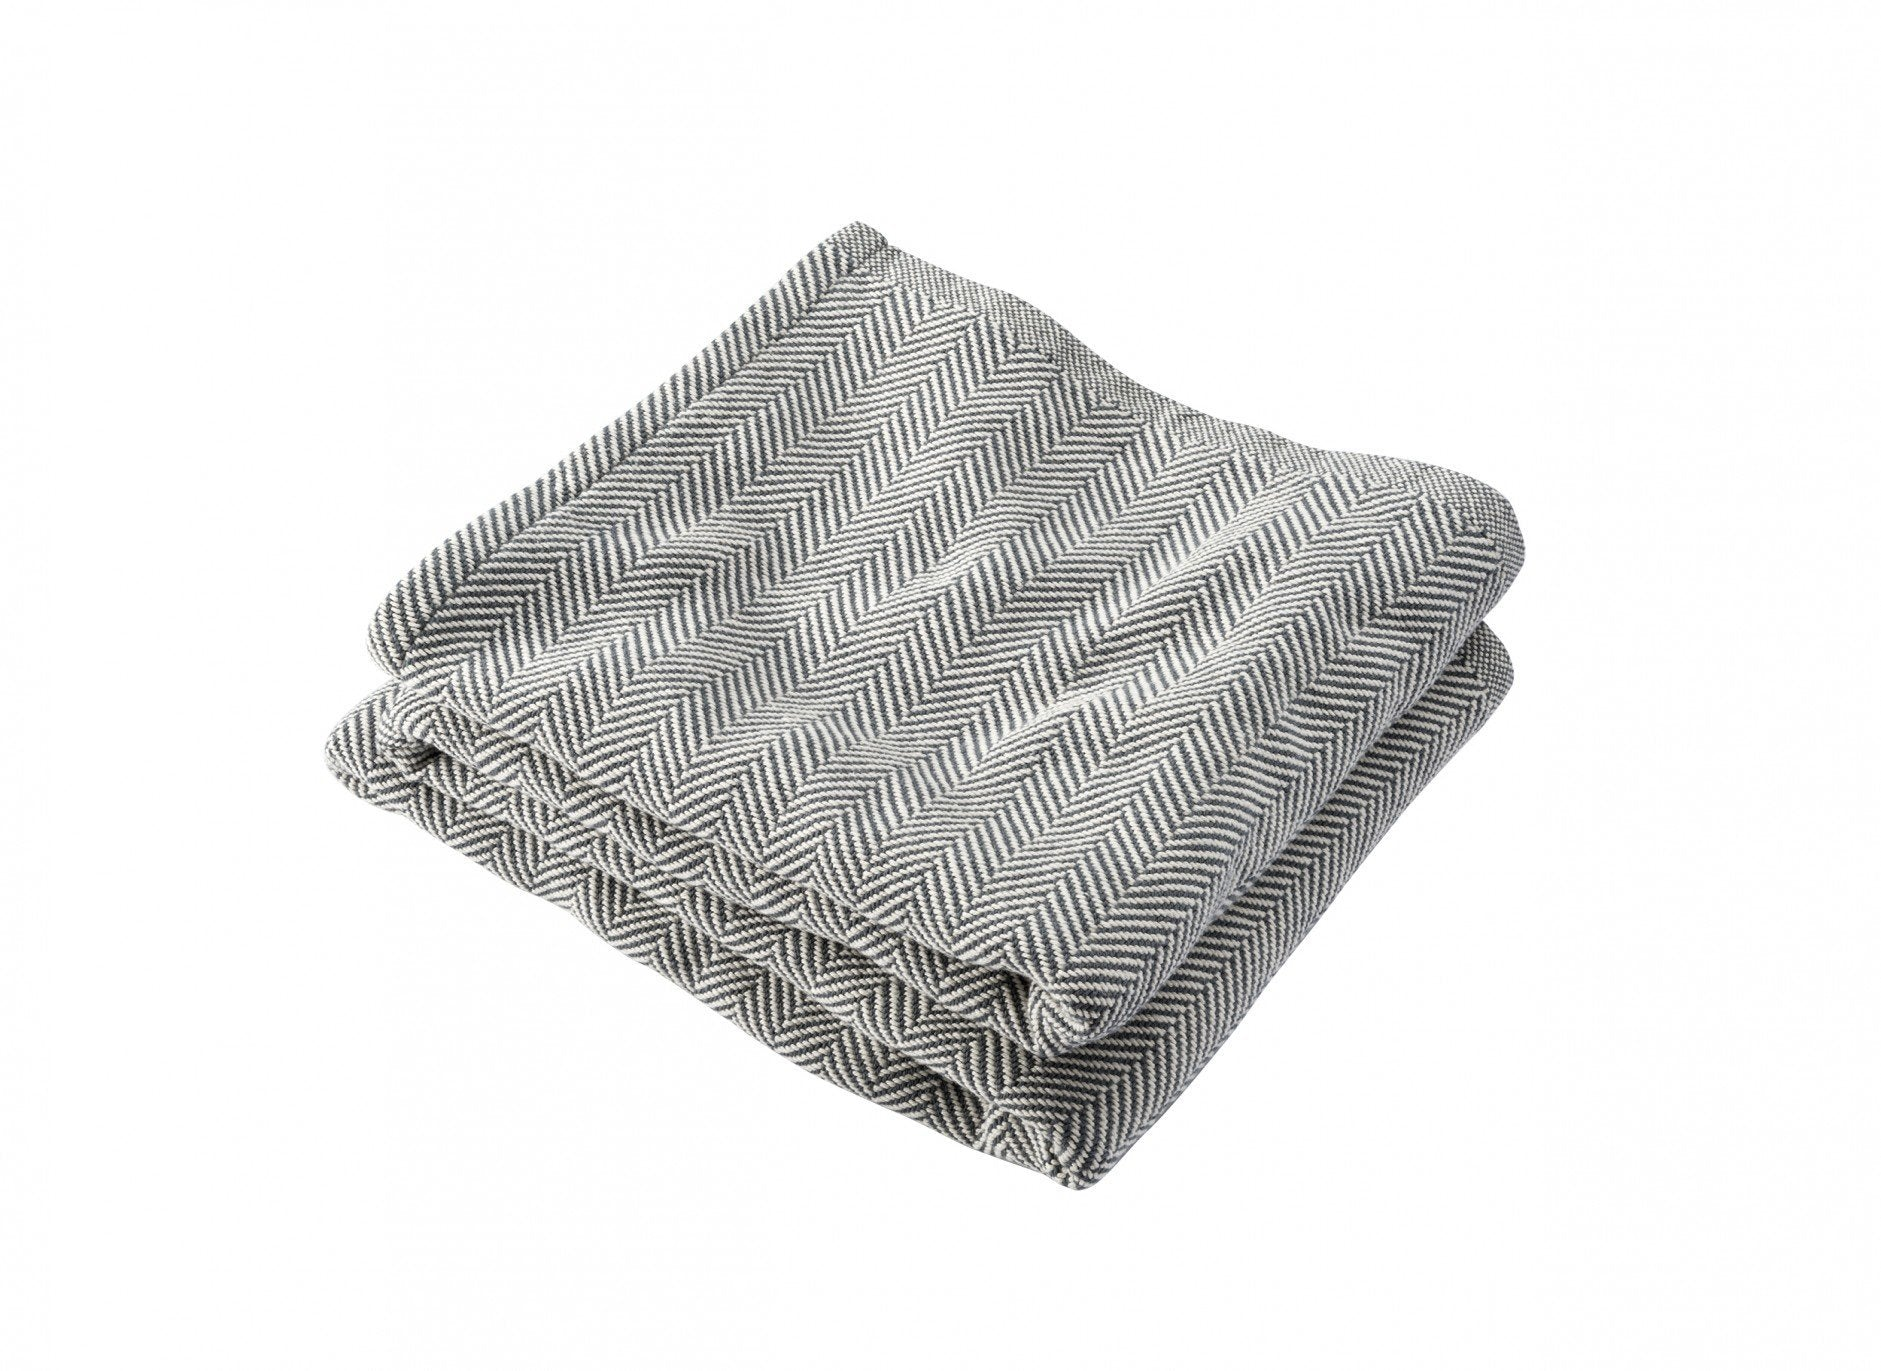 Slate Penobscot Herringbone Cotton Blanket by Brahms Mount | Fig Linens